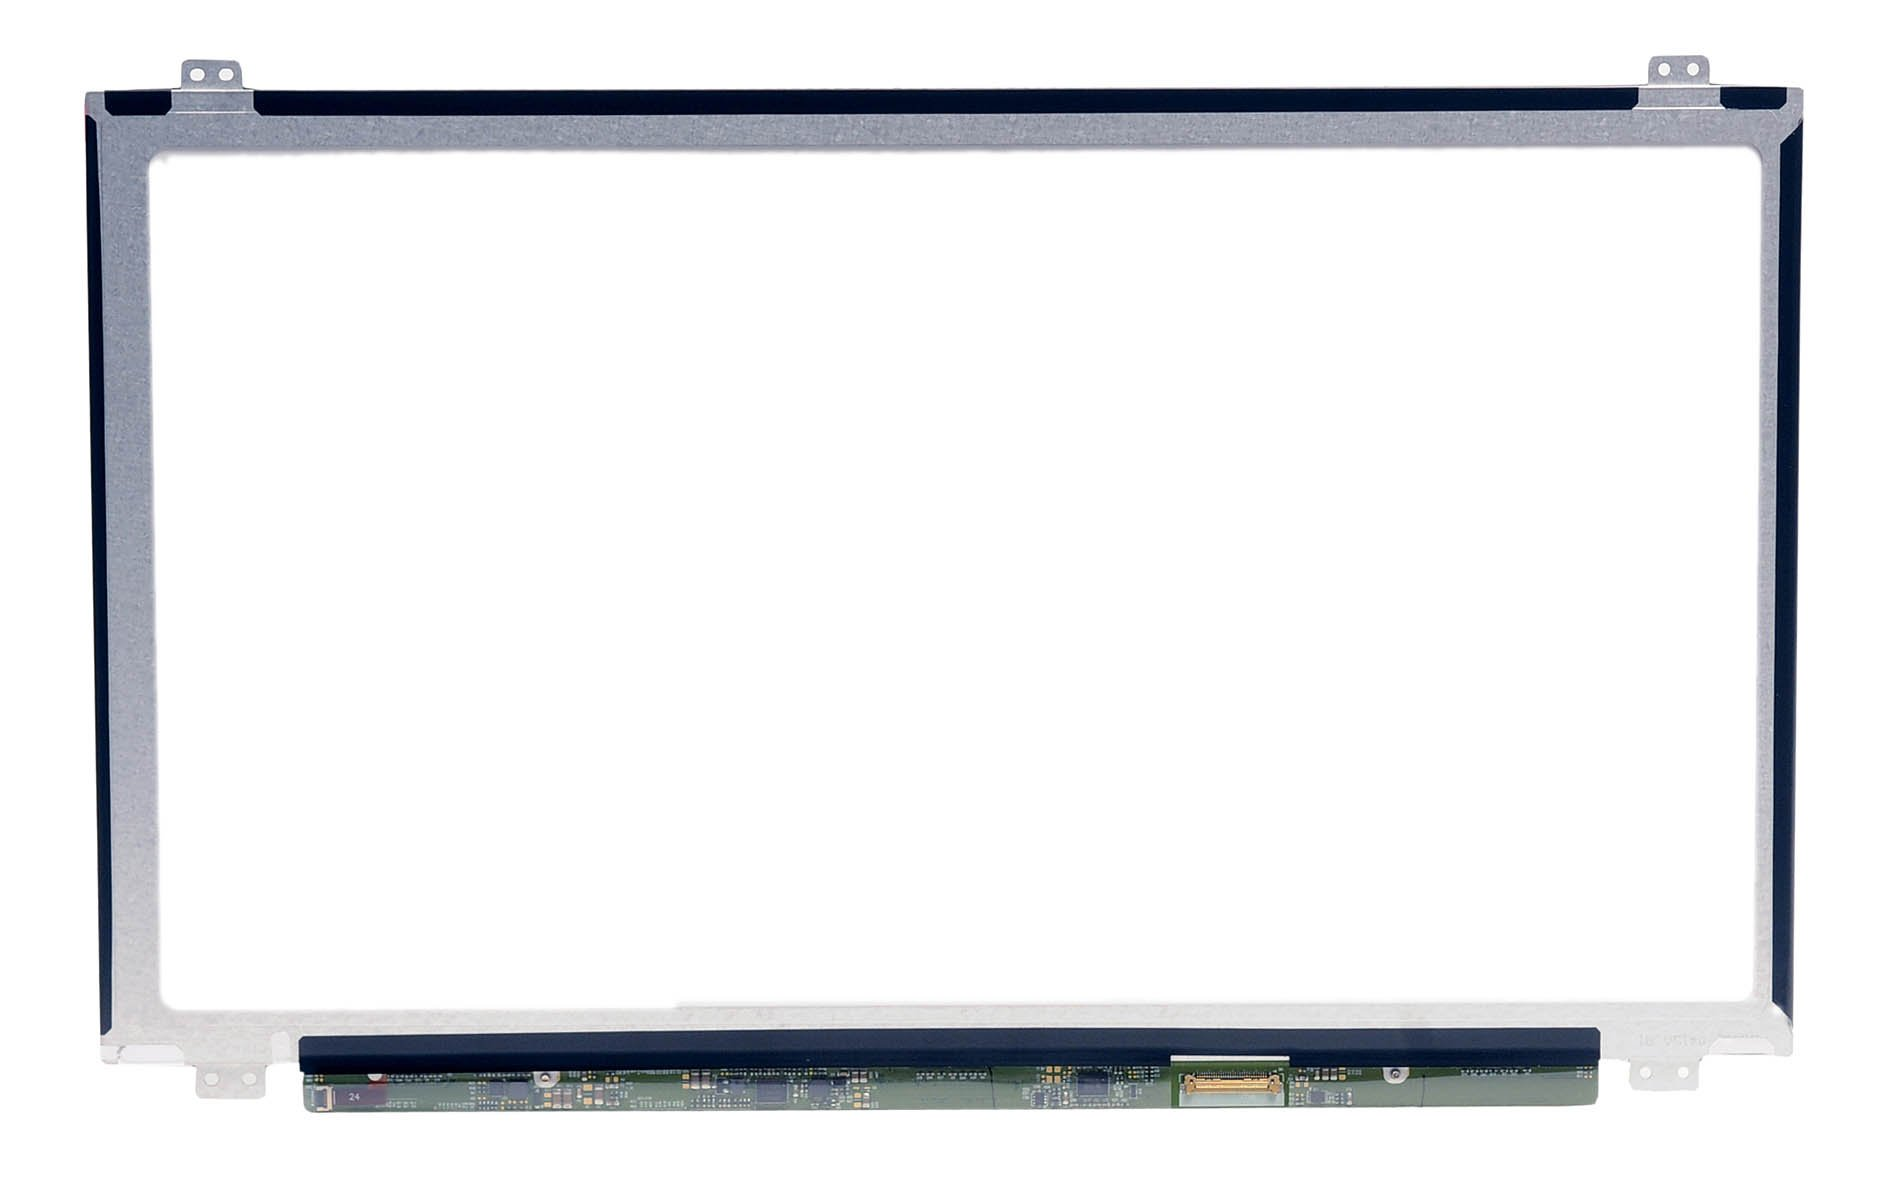 Boehydis Nt156whm-n32 Replacement LAPTOP LCD Screen 15.6'' WXGA HD LED DIODE (Substitute Replacement LCD Screen Only. Not a Laptop) (30 PINS)